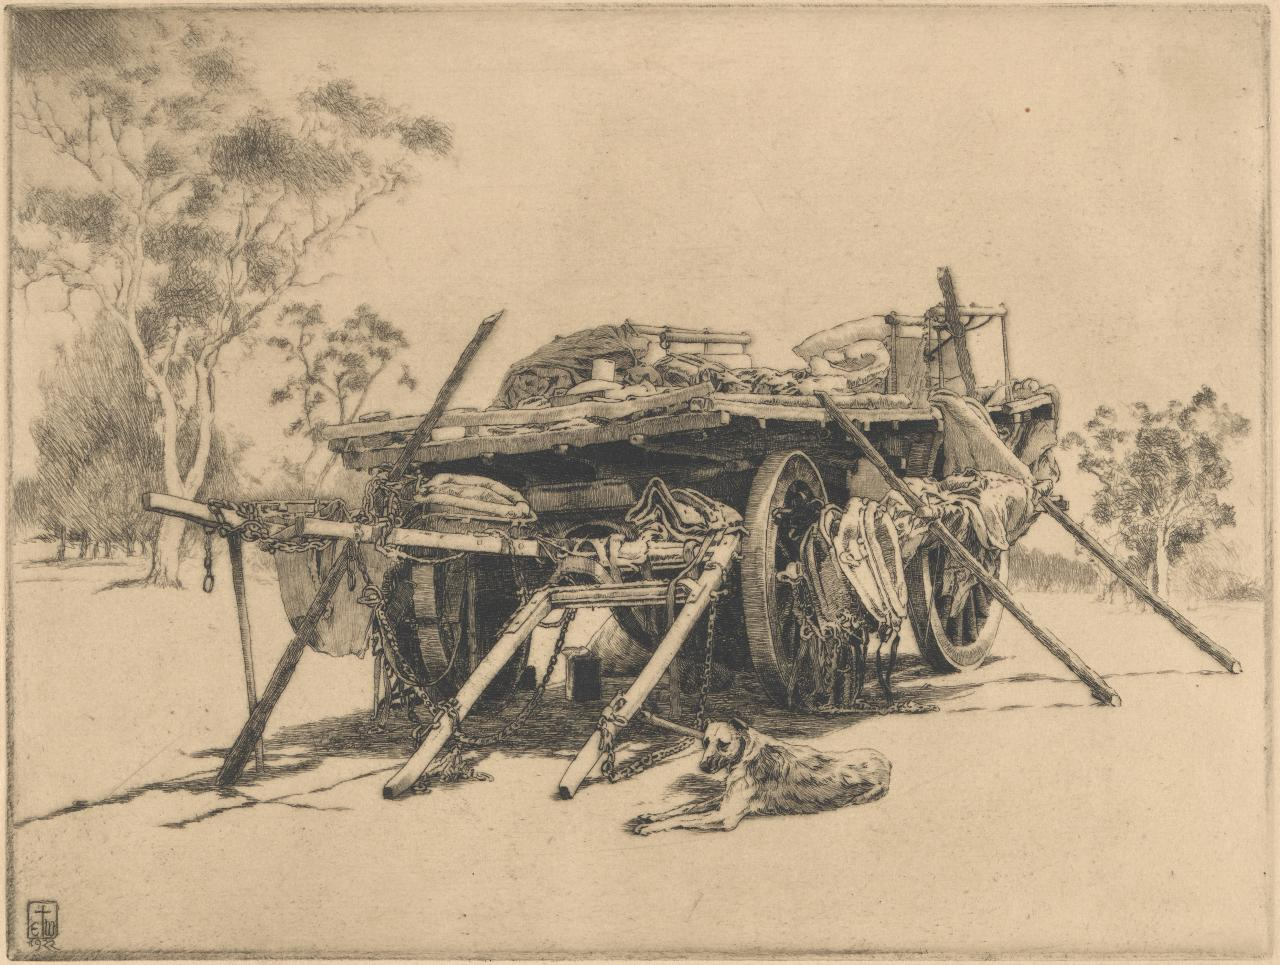 Pengilly's wagon